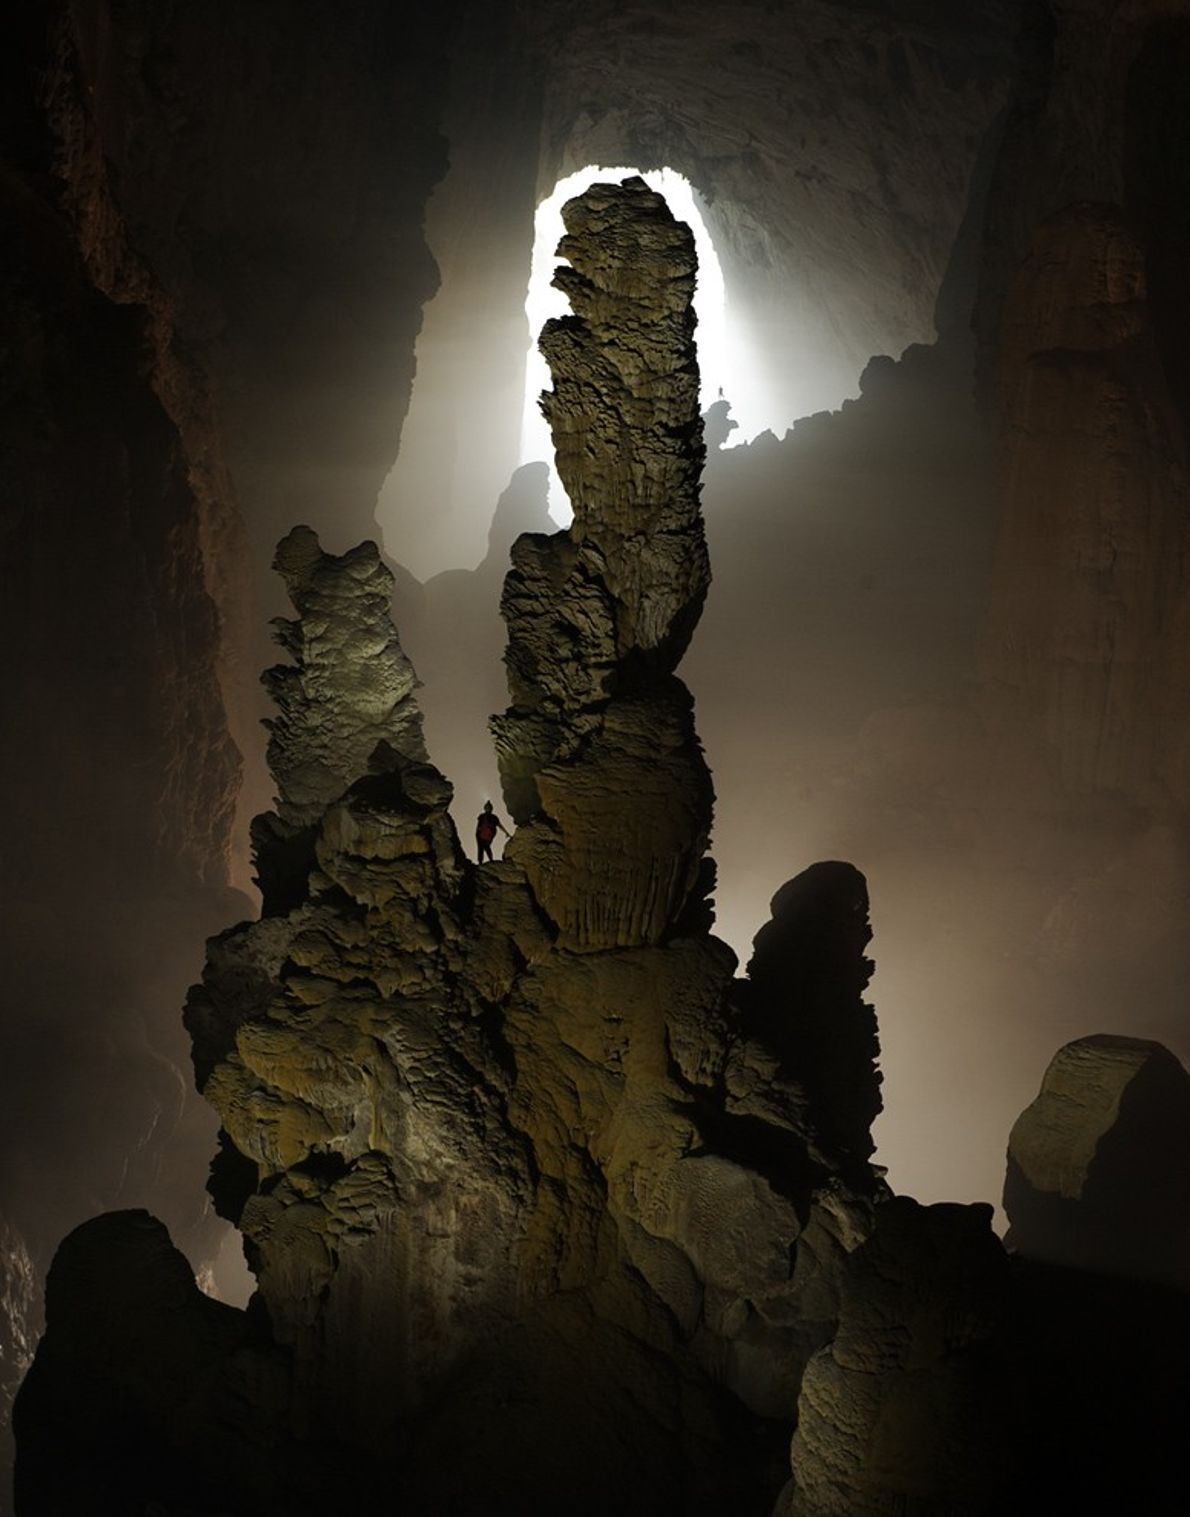 A spelunker takes a close look at the Hand of Dog stalagmite in Hang Son Doong ...